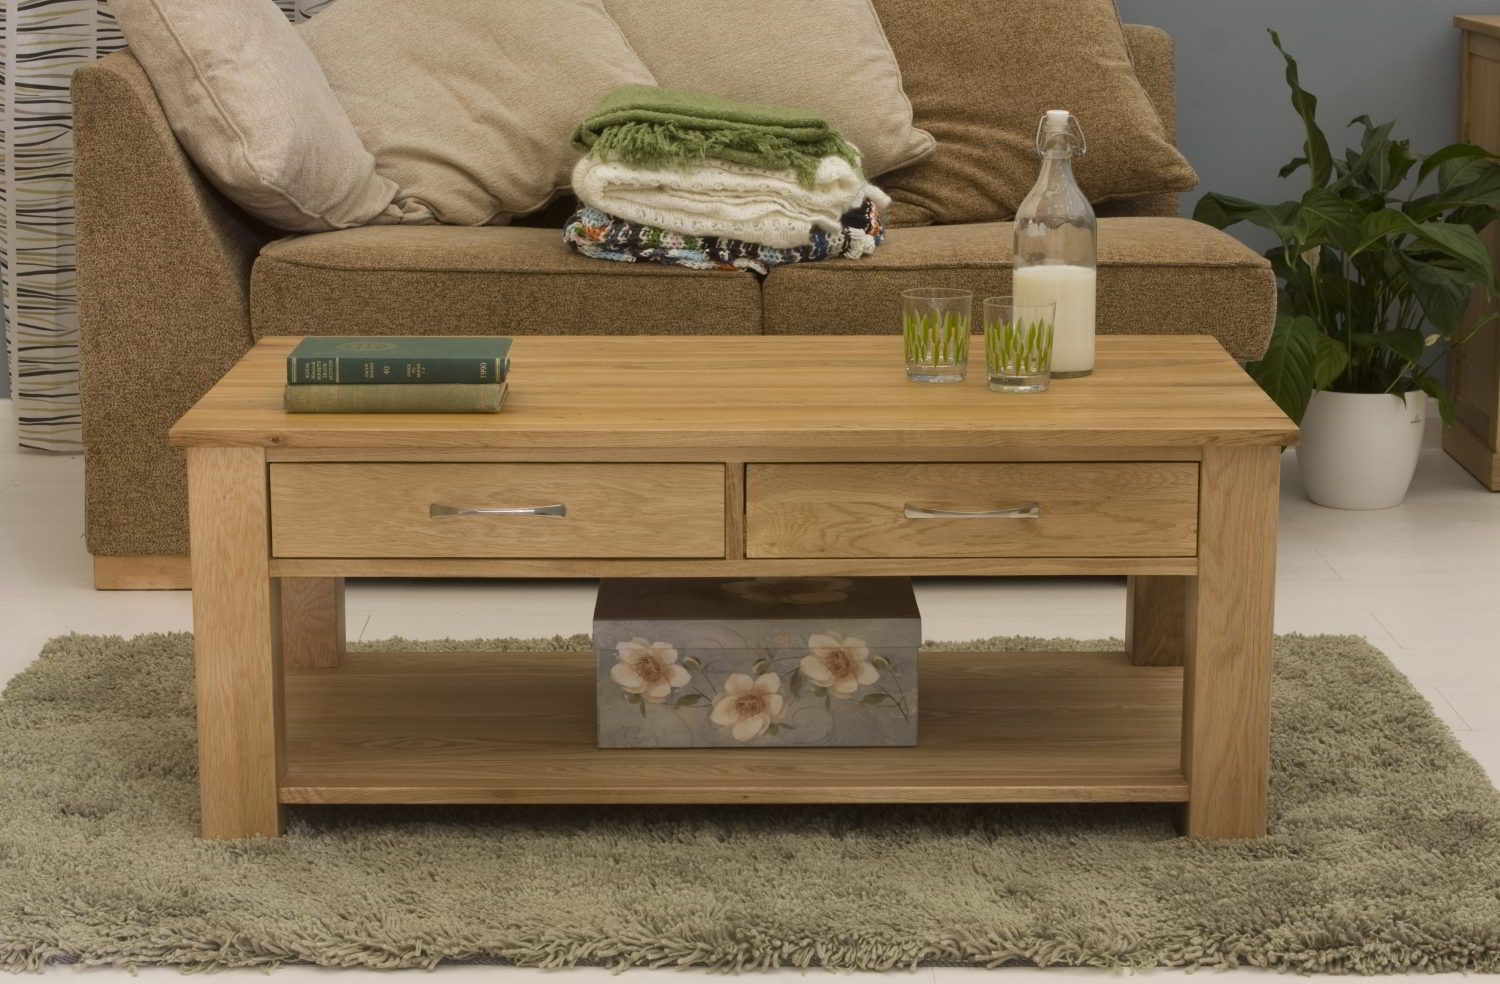 Admirable Details About Conran Solid Oak Living Room Lounge Furniture Four Drawer Storage Coffee Table Interior Design Ideas Philsoteloinfo